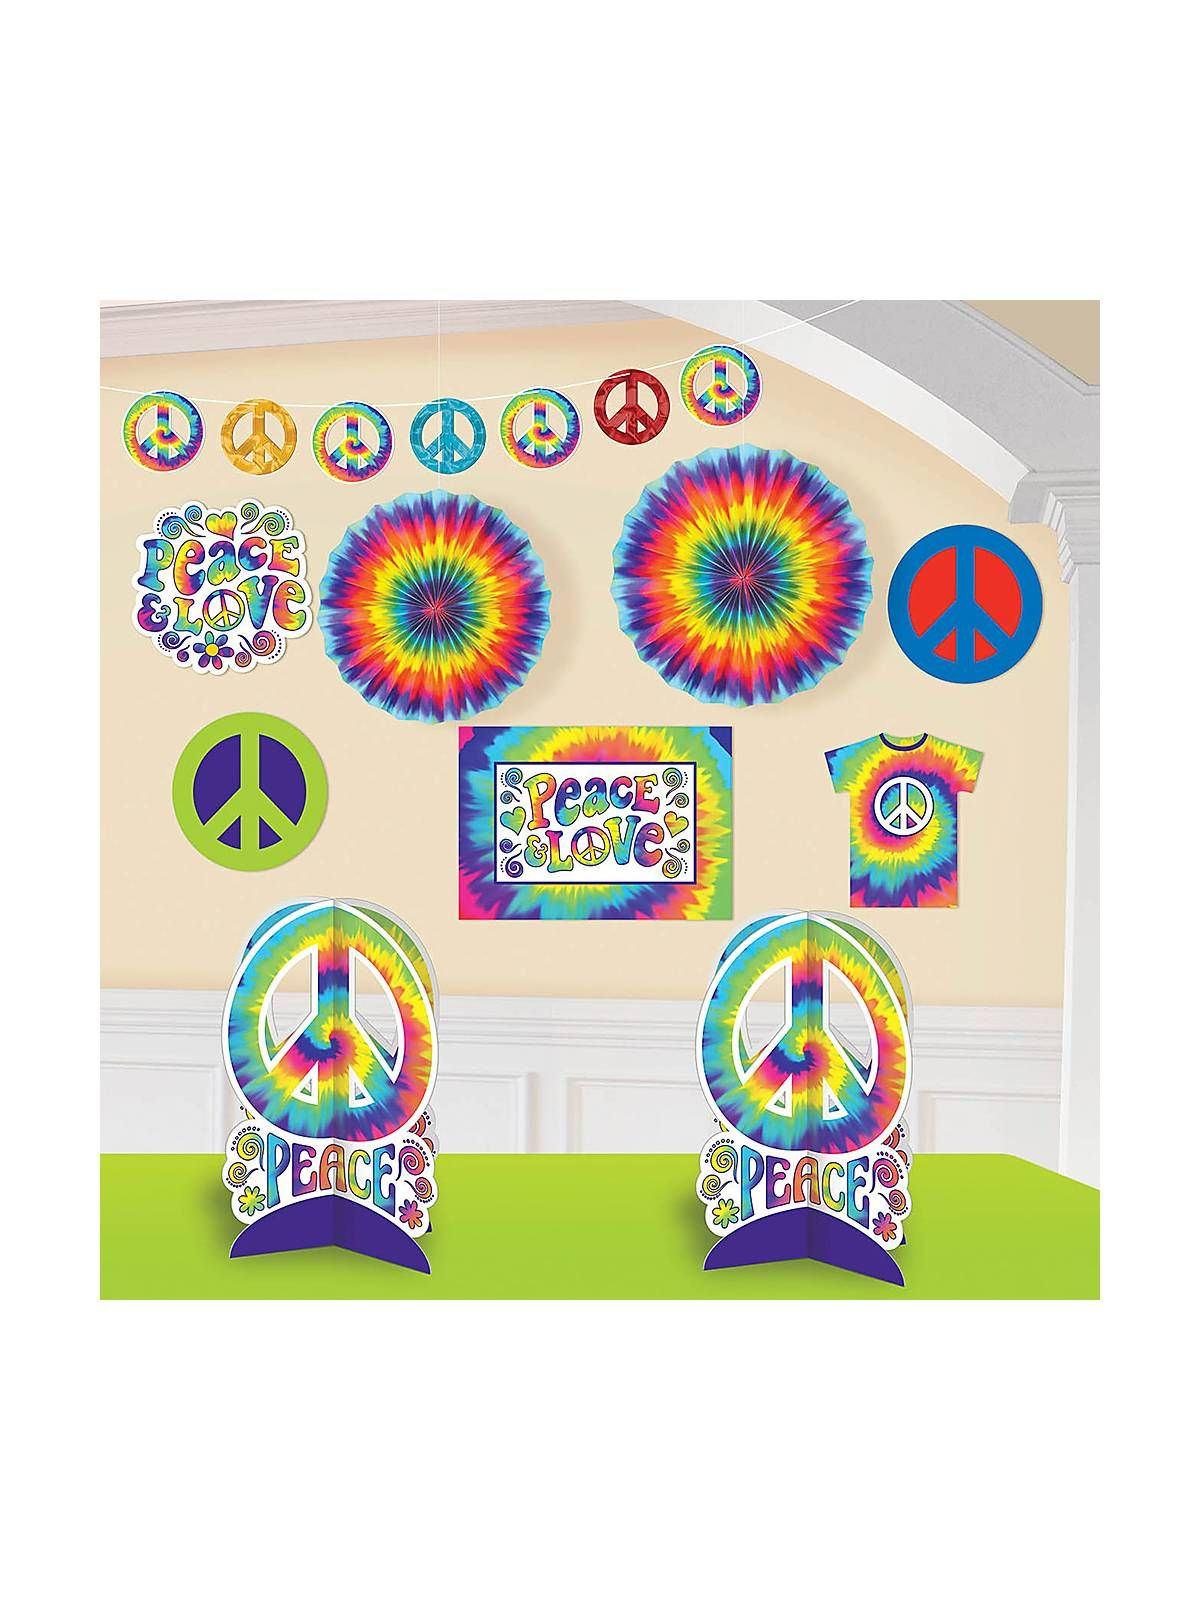 60 39s Groovy Hippie Room Decorating Kit Each Wholesale